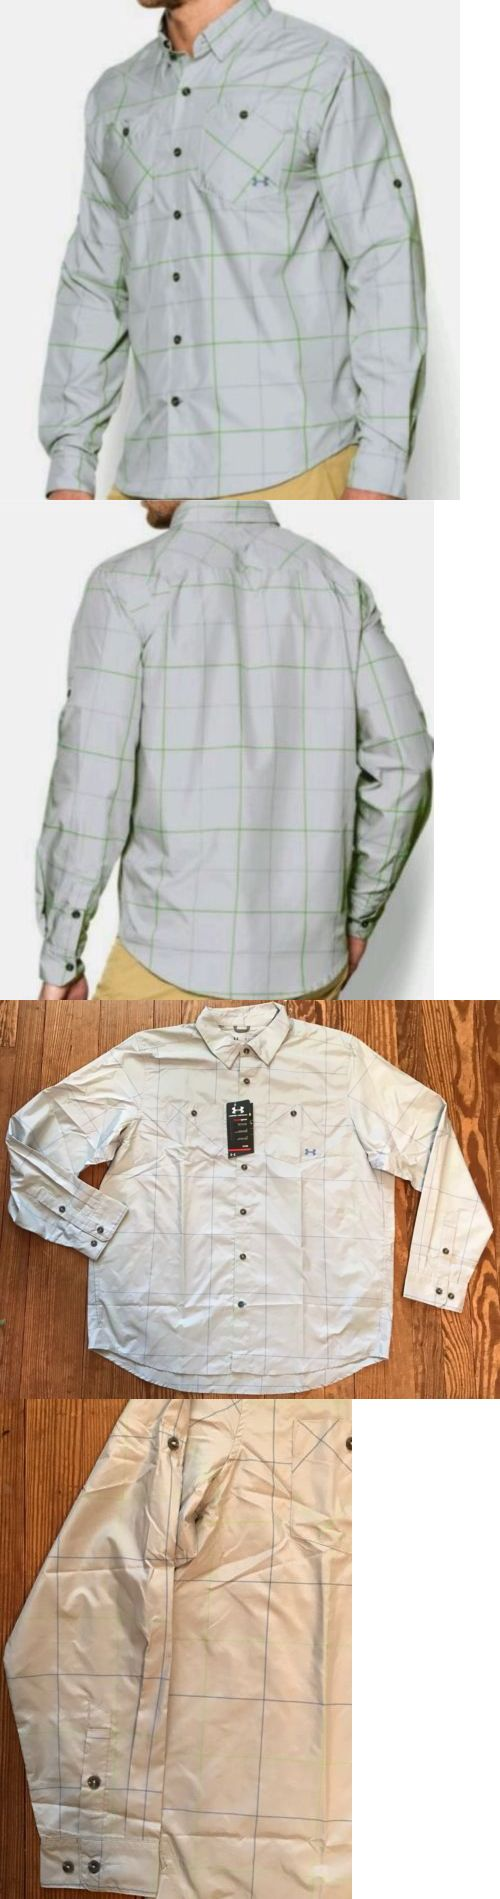 Shirts and Tops 179982: Nwt Men S Under Armour Chesapeake Plaid Long Sleeve Fishing Shirt Sz Xl Hydro -> BUY IT NOW ONLY: $35.99 on eBay!